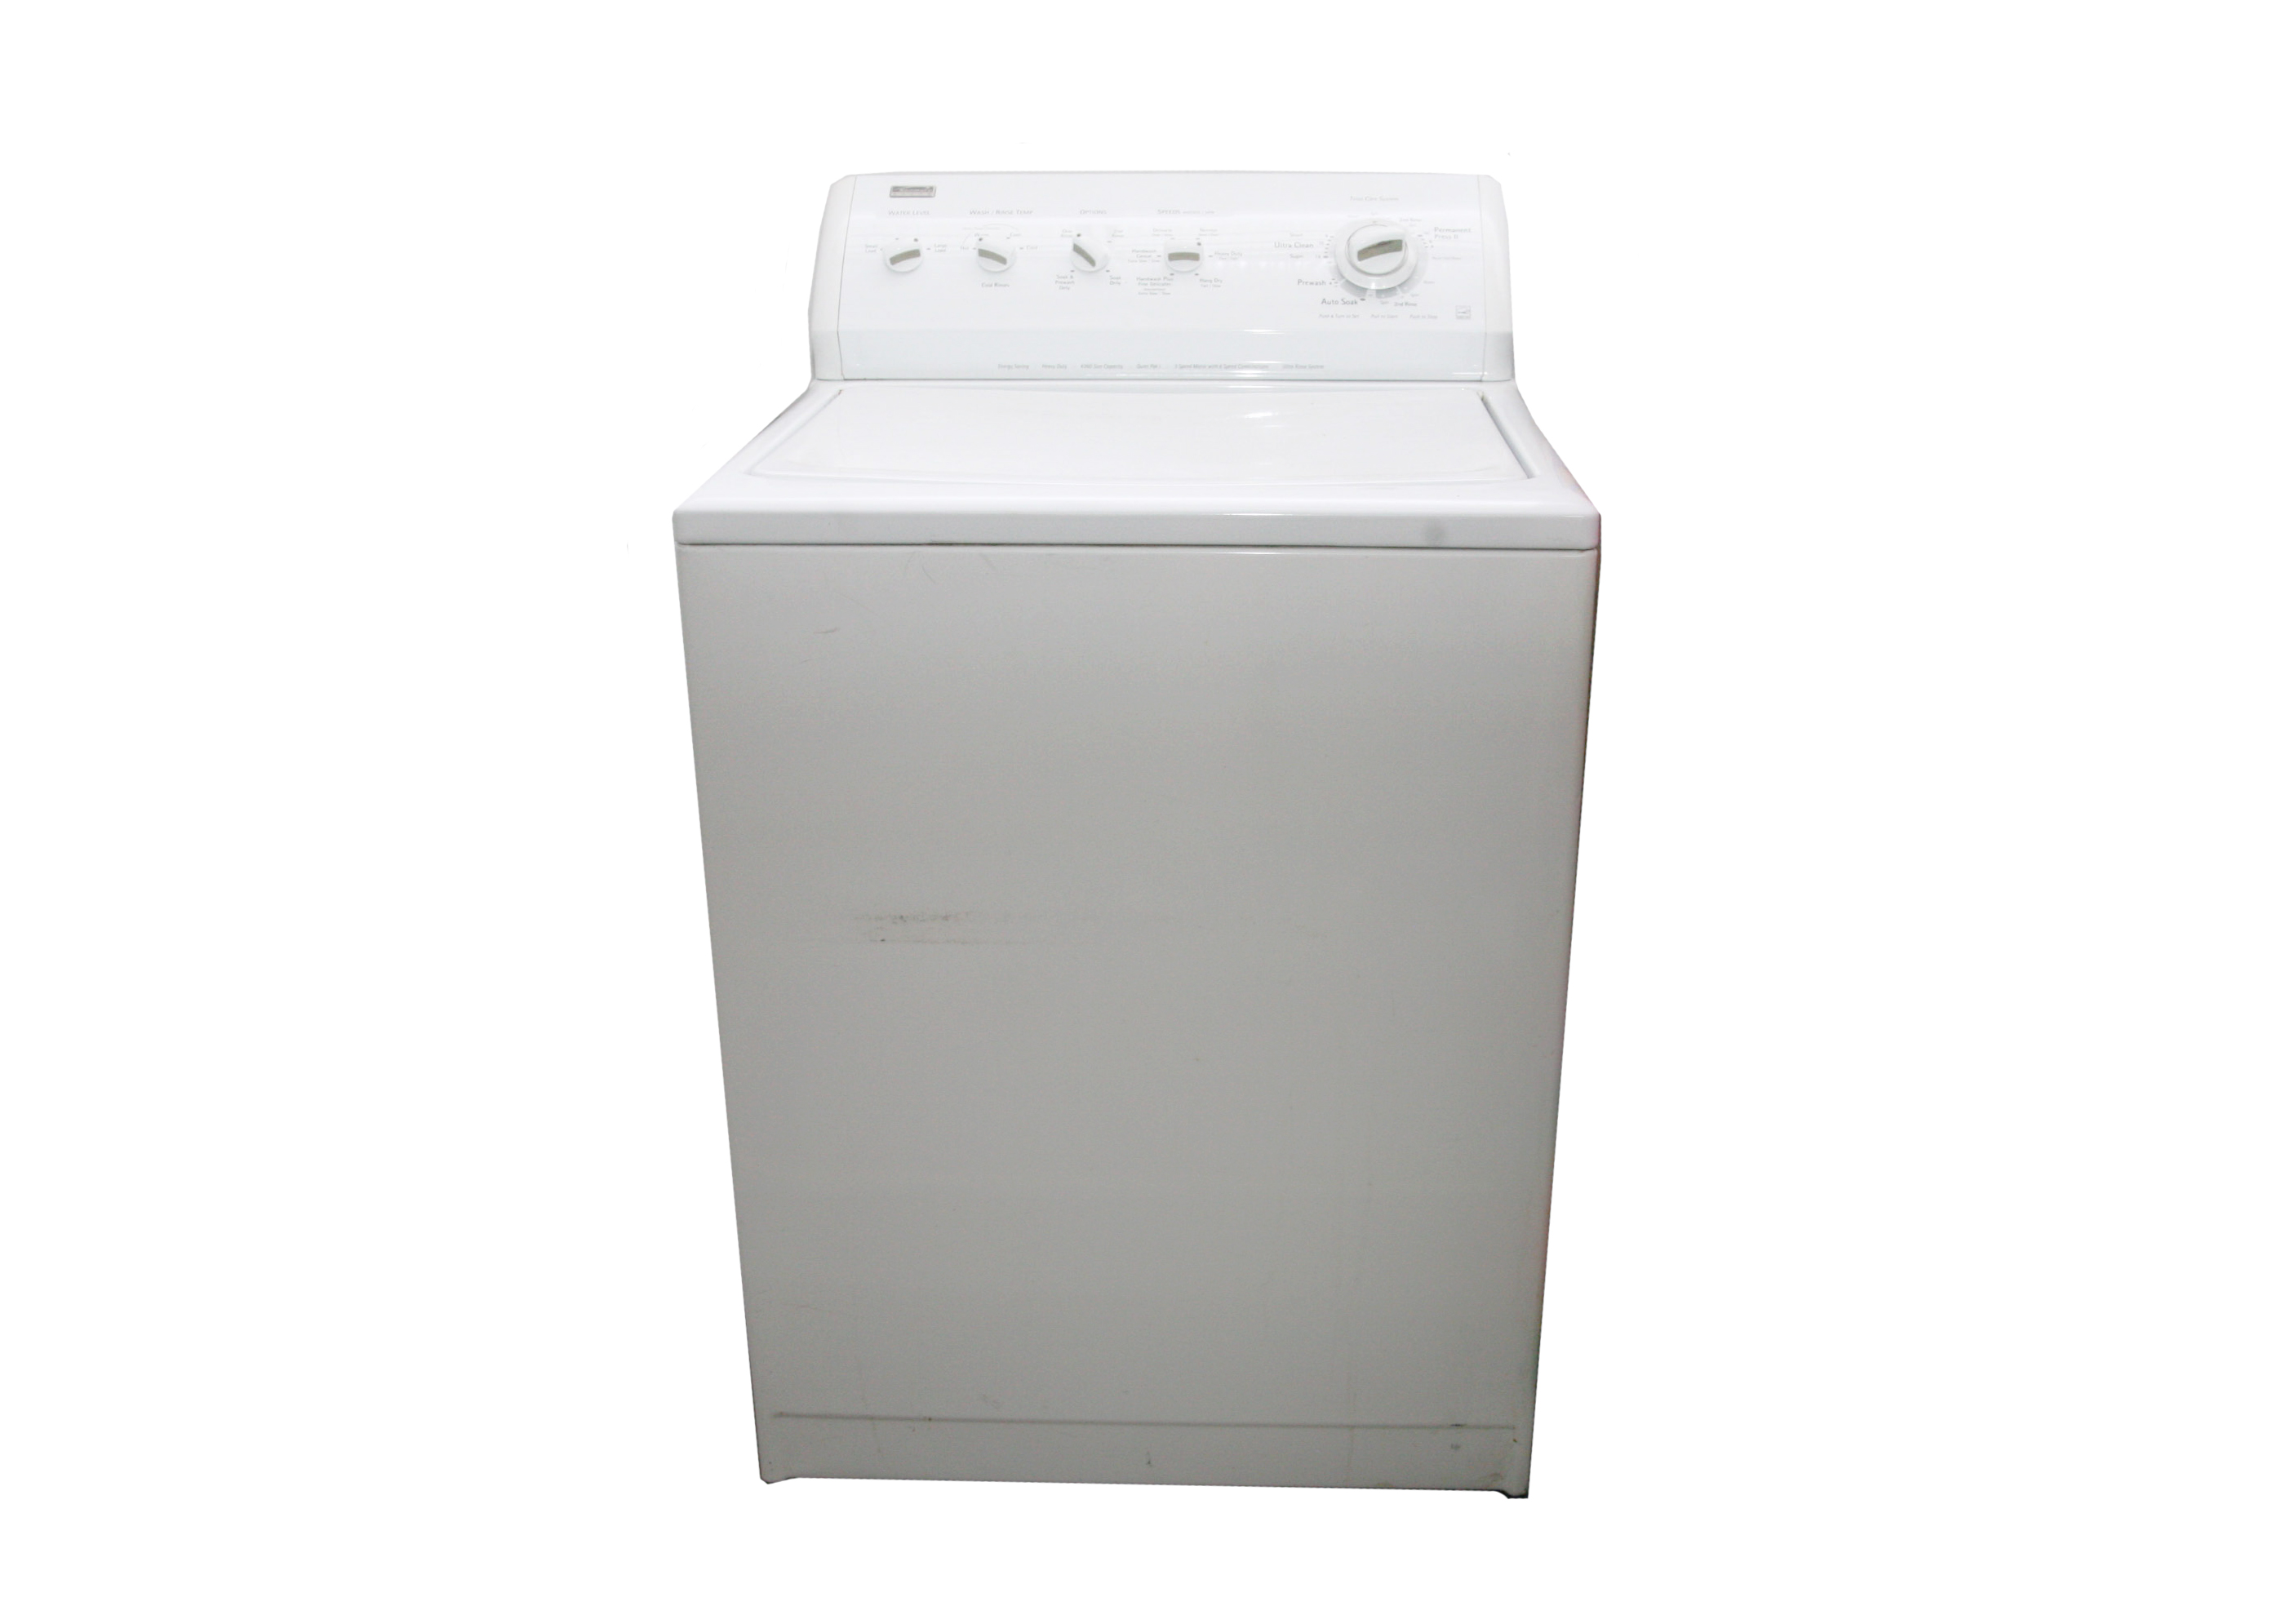 kenmore 400 washer. kenmore elite washer 400 n